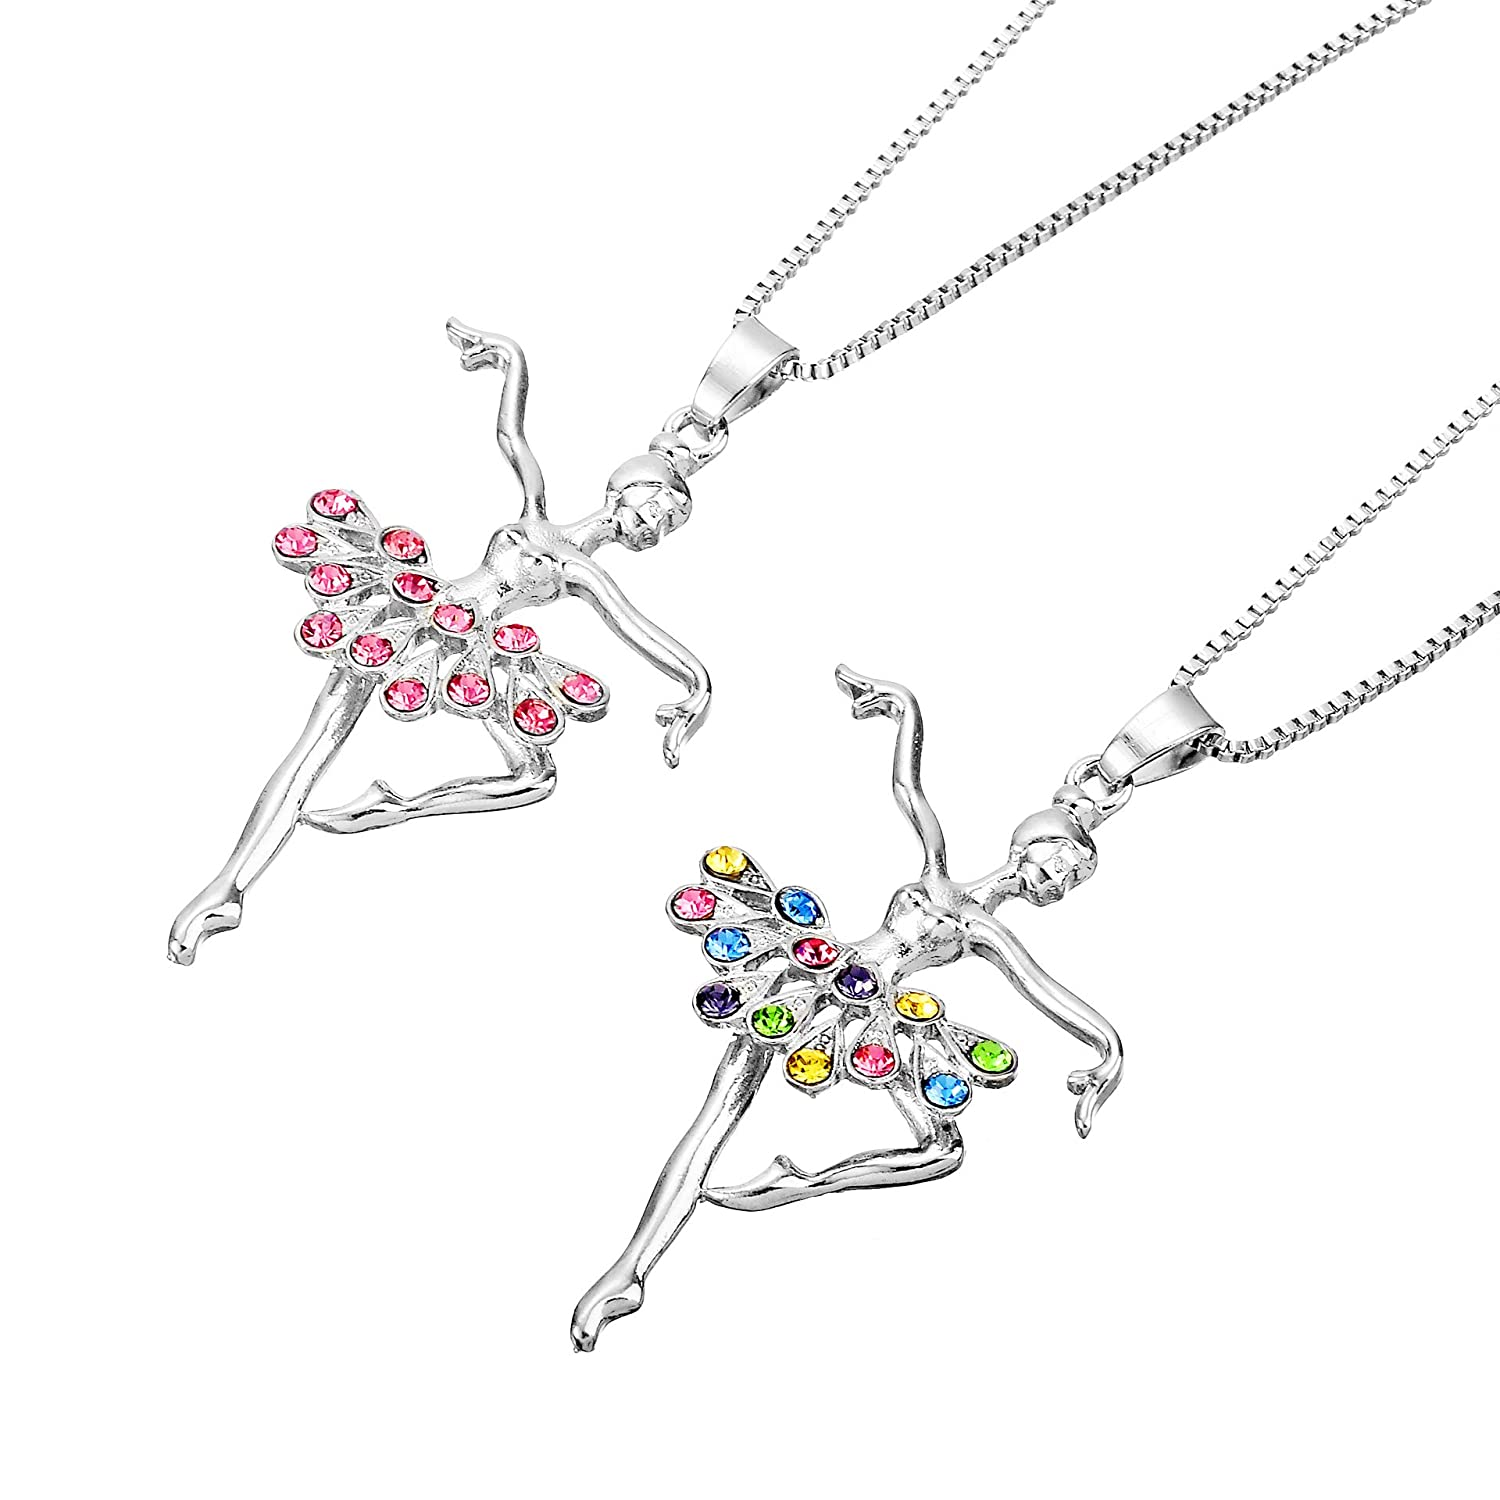 086d82e84caf YILIN Little Girl Necklace Dancer Ballet Recital Gift Ballerina ...